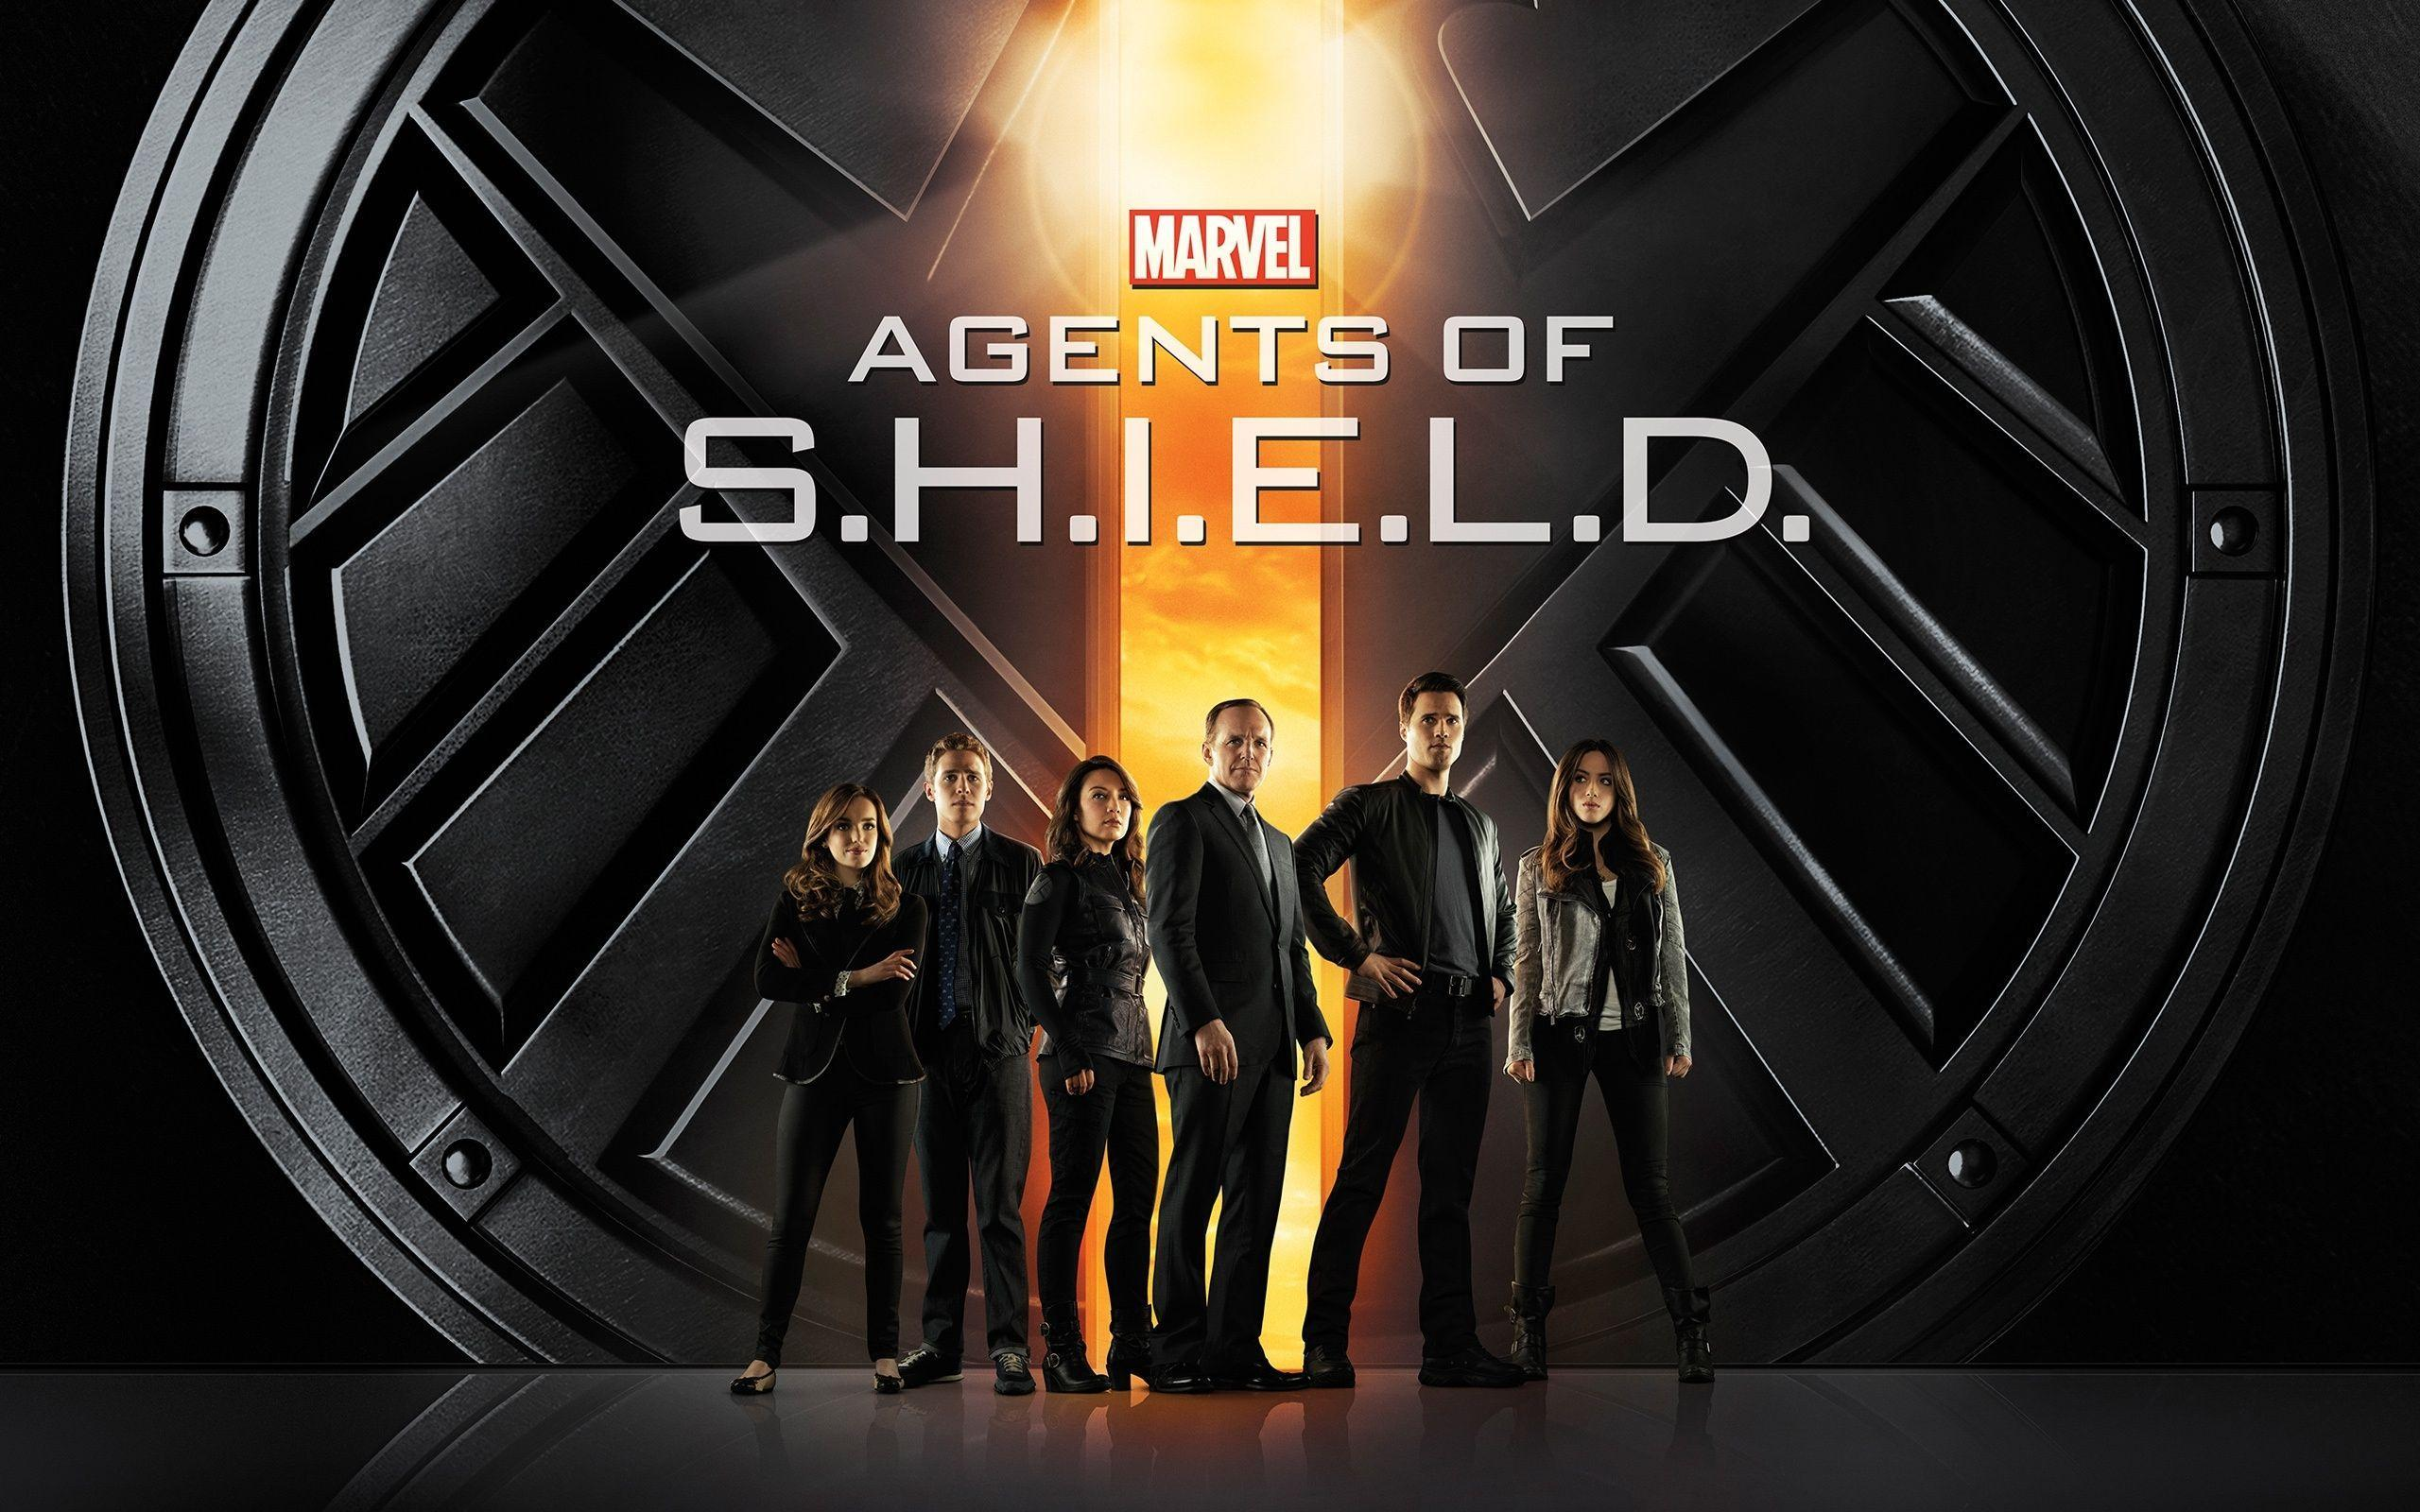 Agents Of Shield Wallpapers Wallpaper Cave